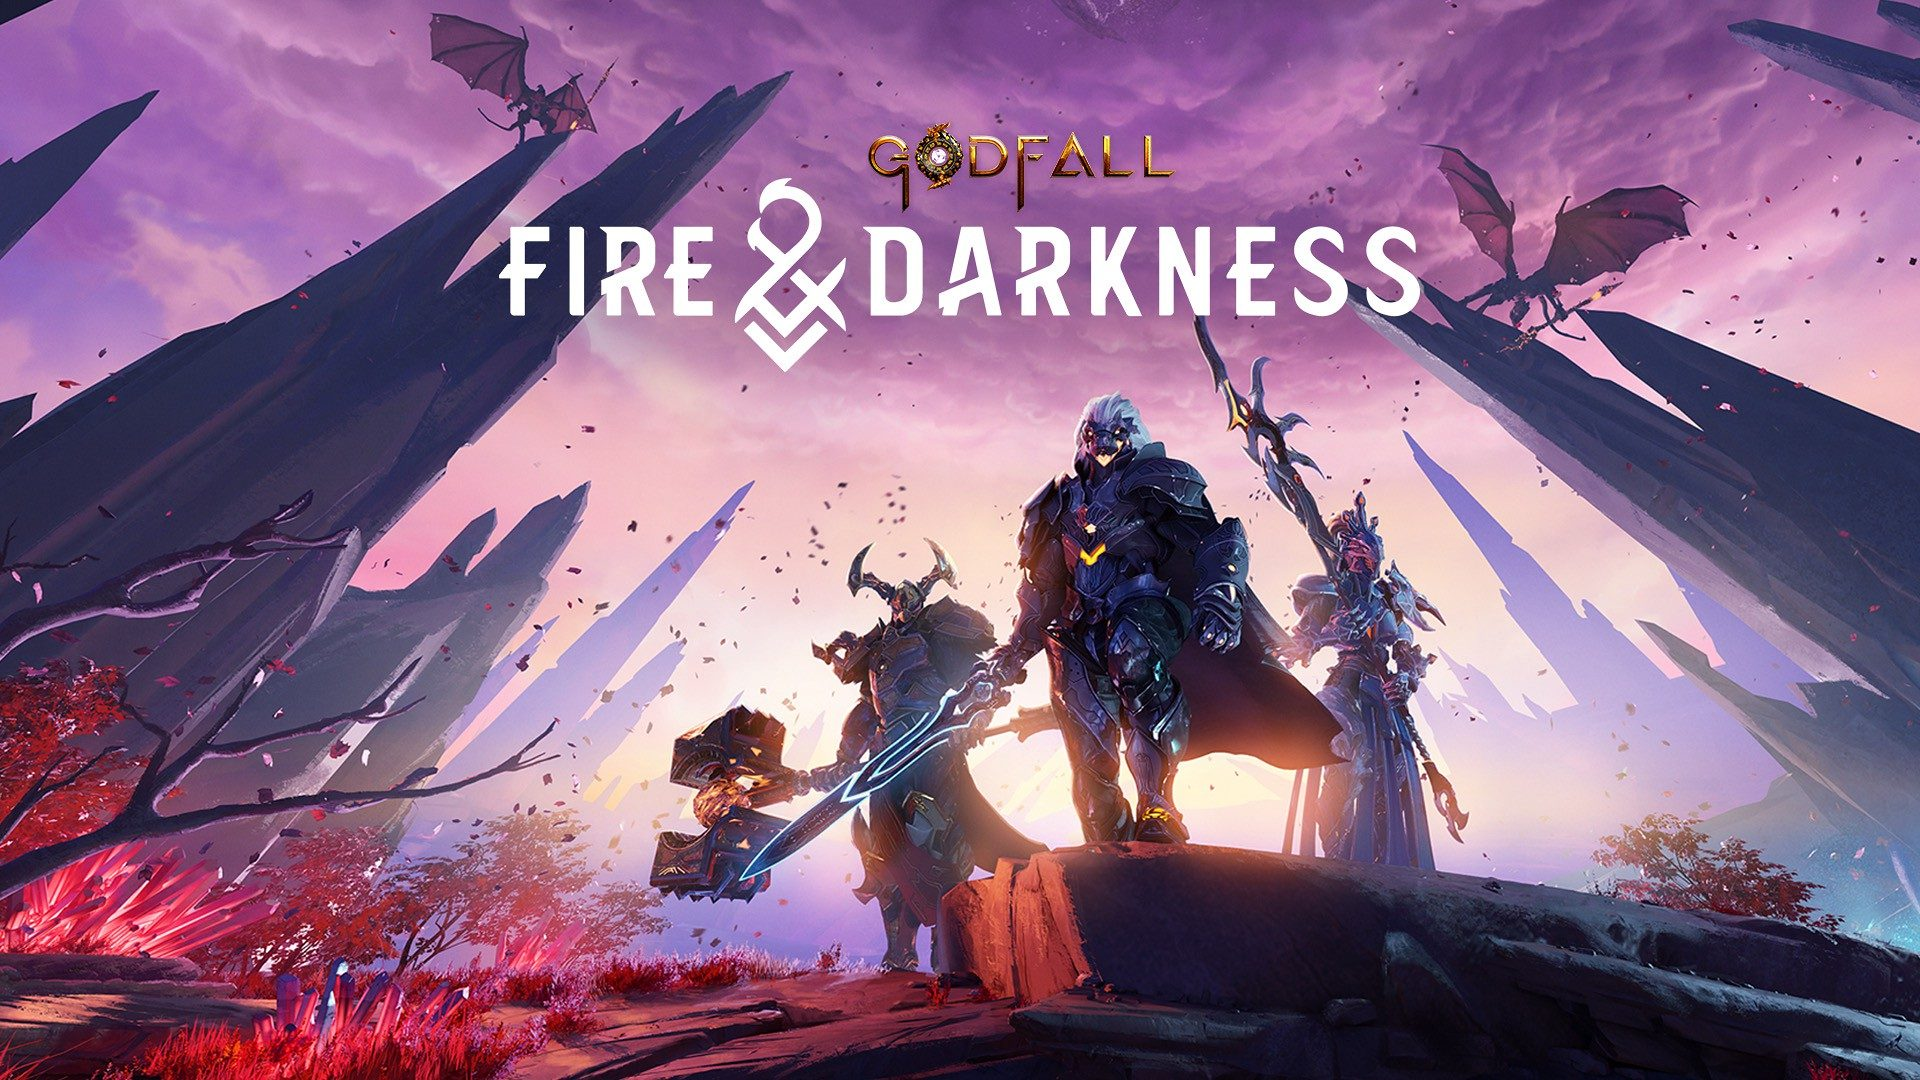 Godfall comes to PS4 August 10, alongside new Fire & Darkness expansion